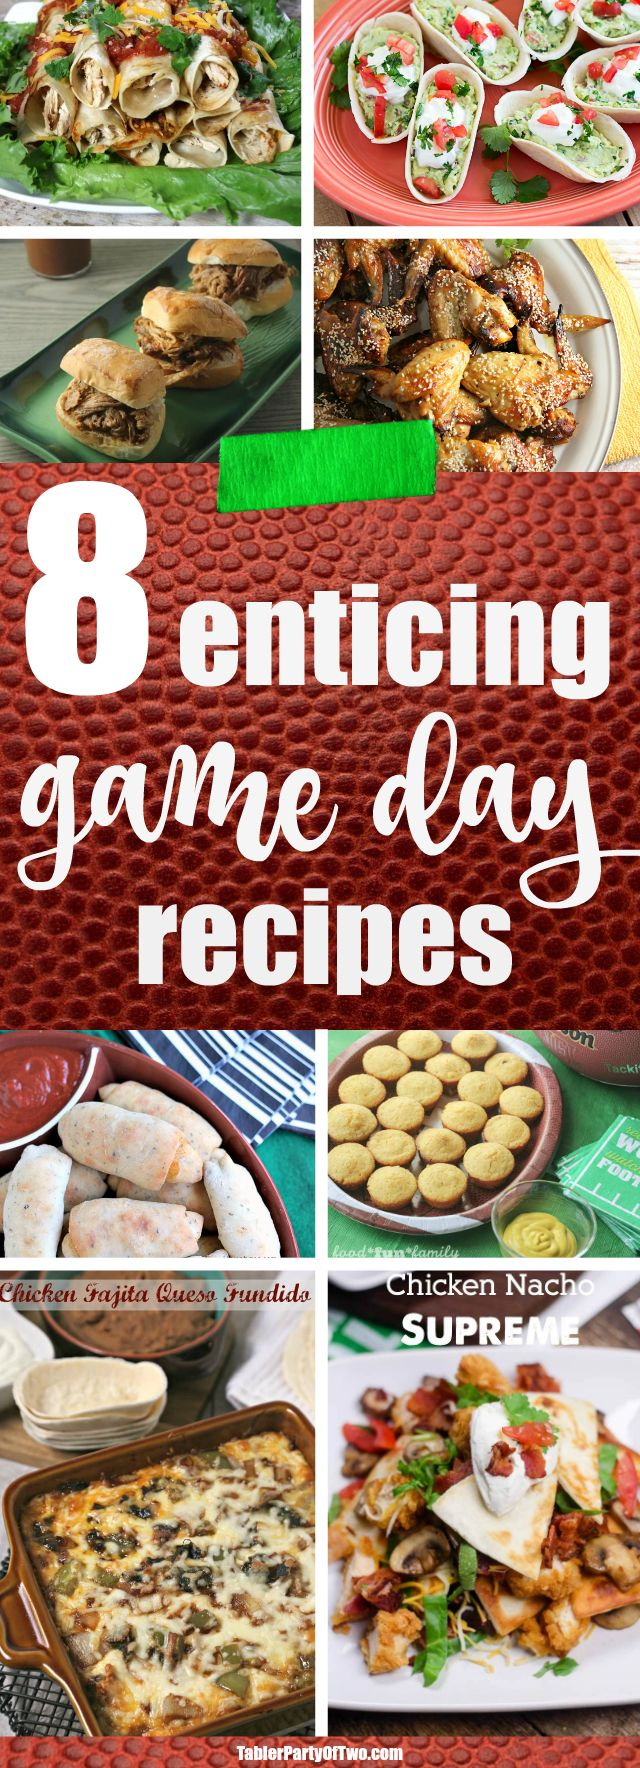 8 Enticing Game Day Recipes